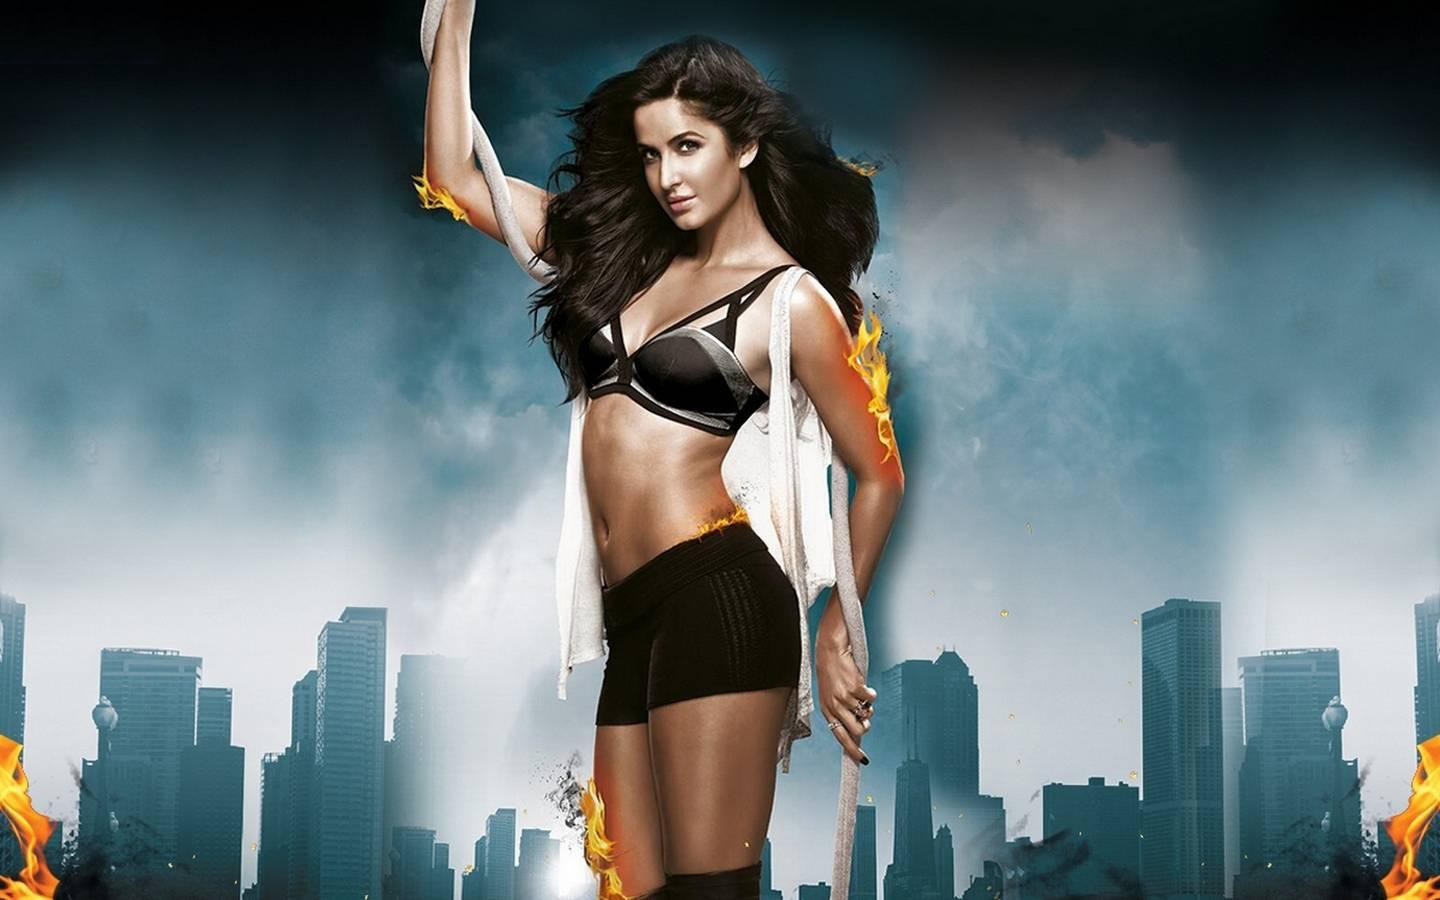 Bollywood Actress Katrina Kaif Hd Wallpapers, Hd Images -3855